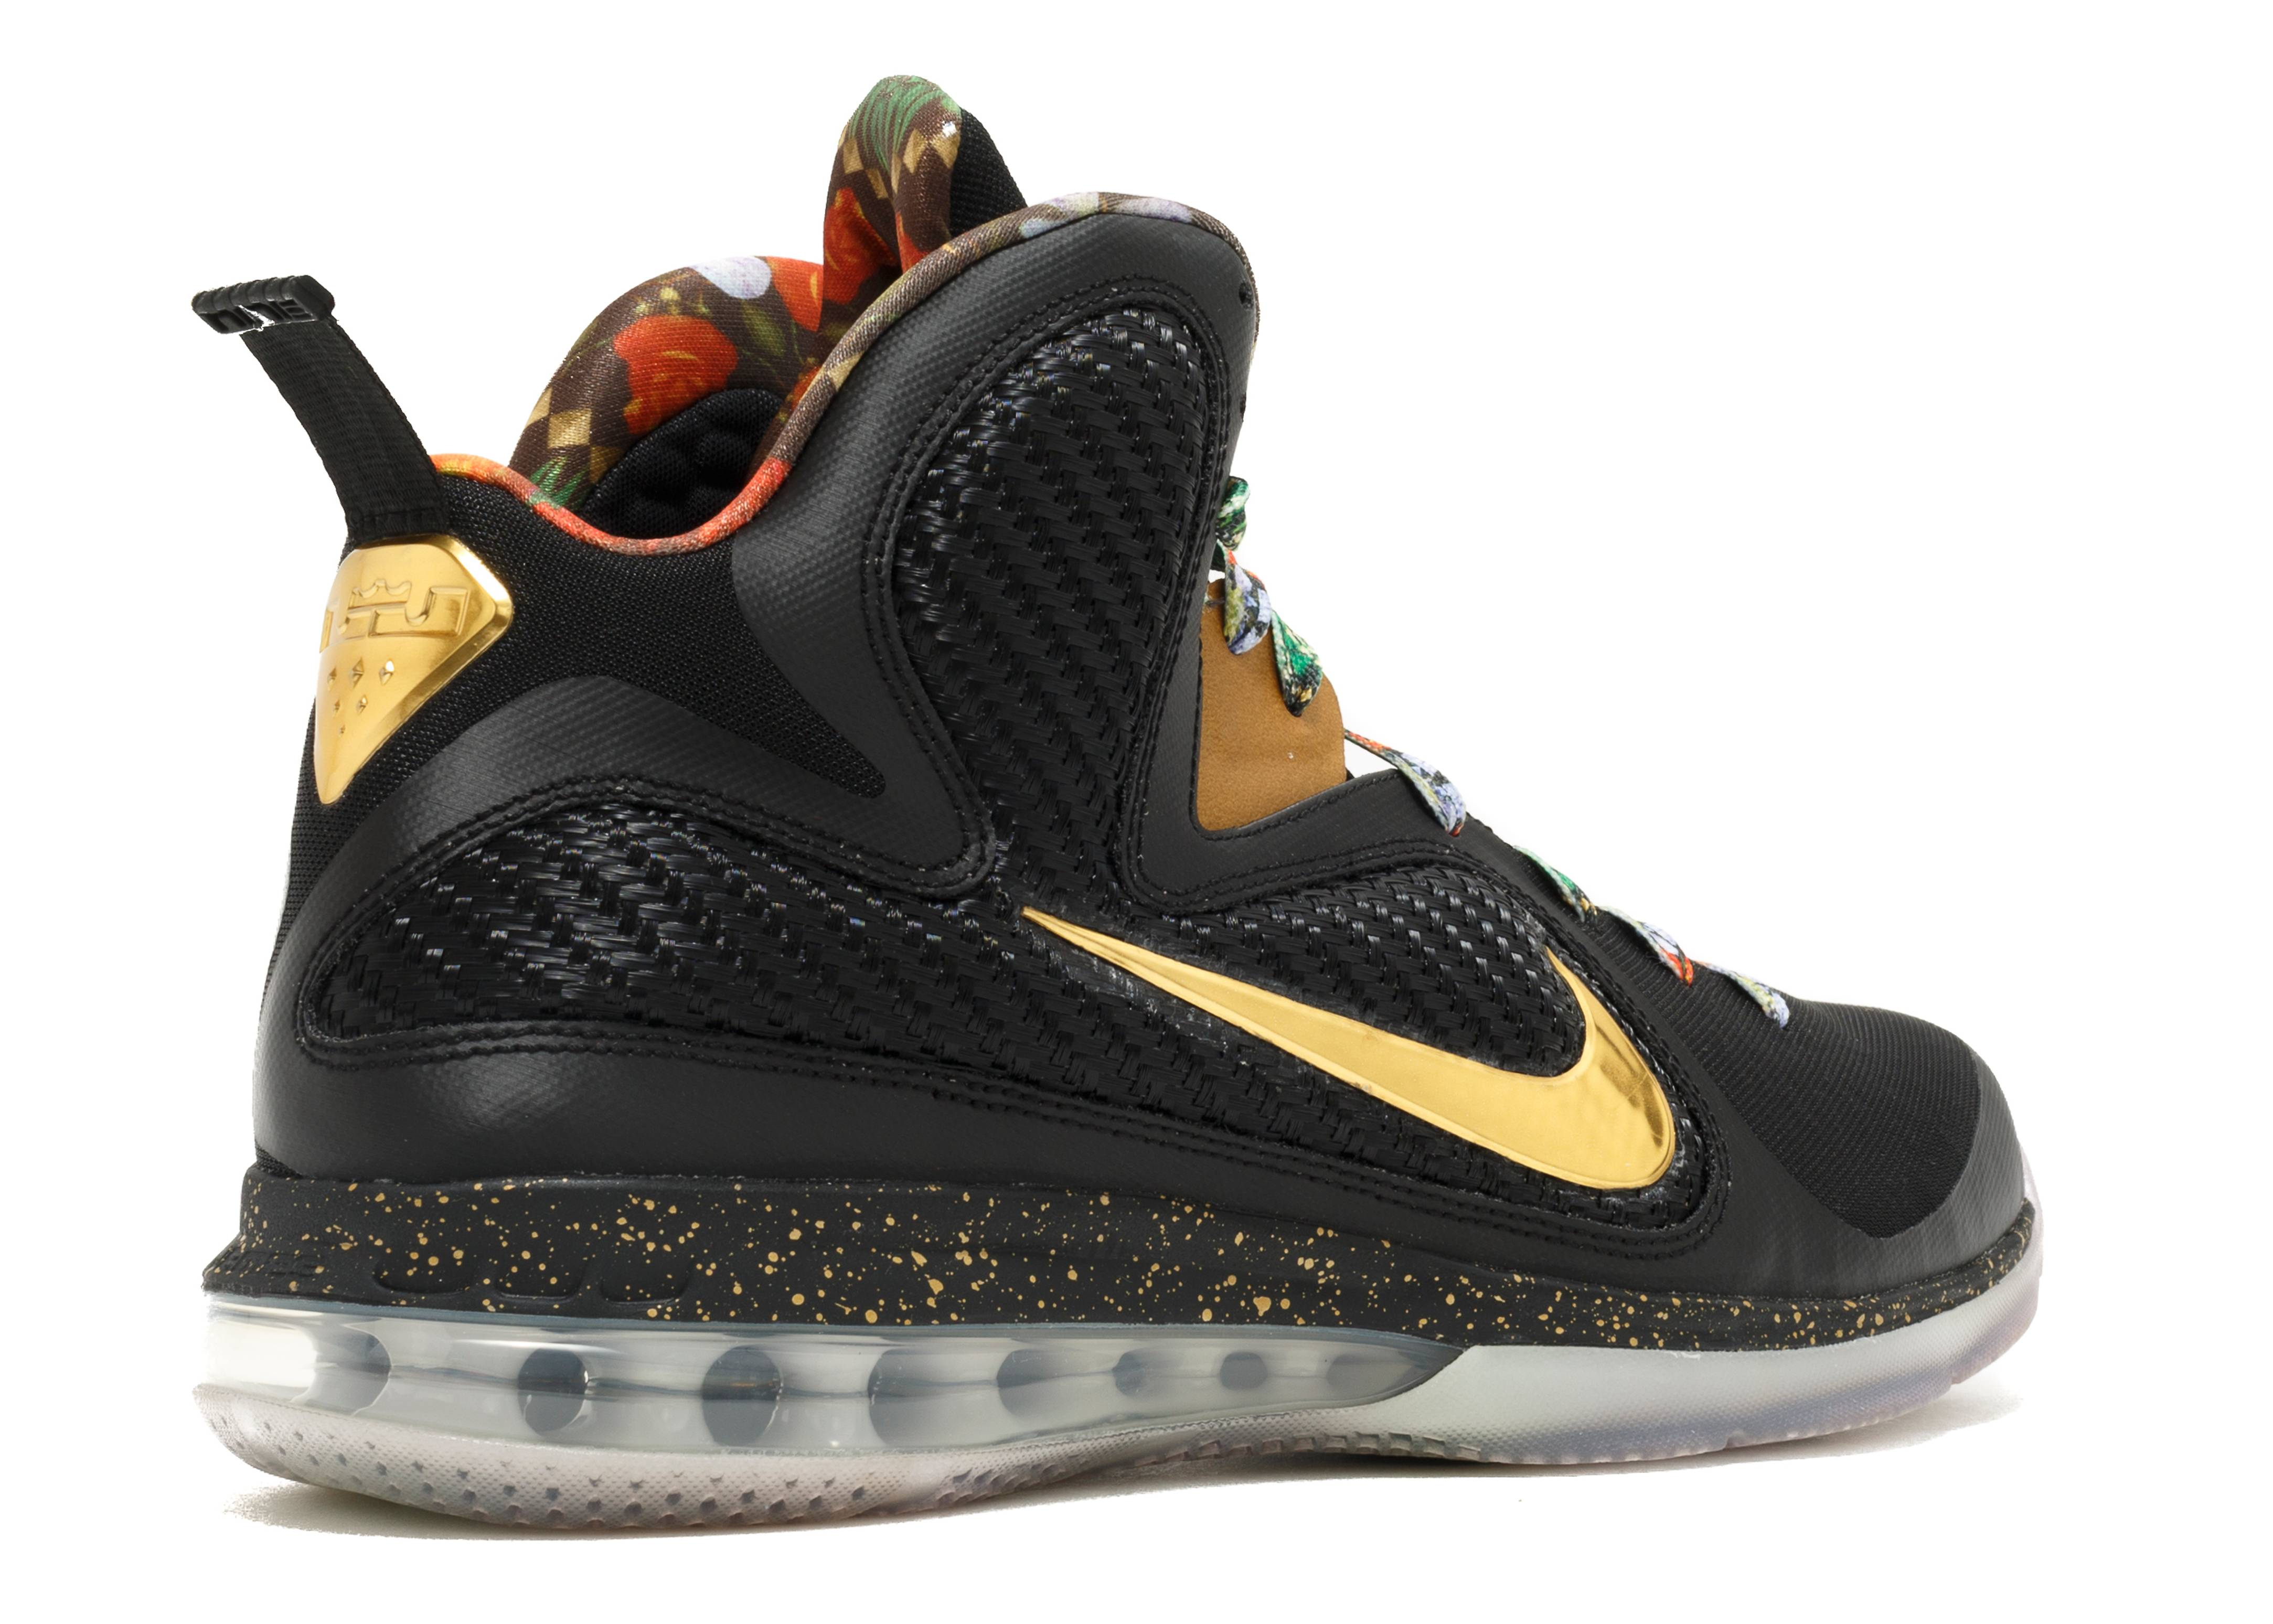 lebron 11 watch the throne